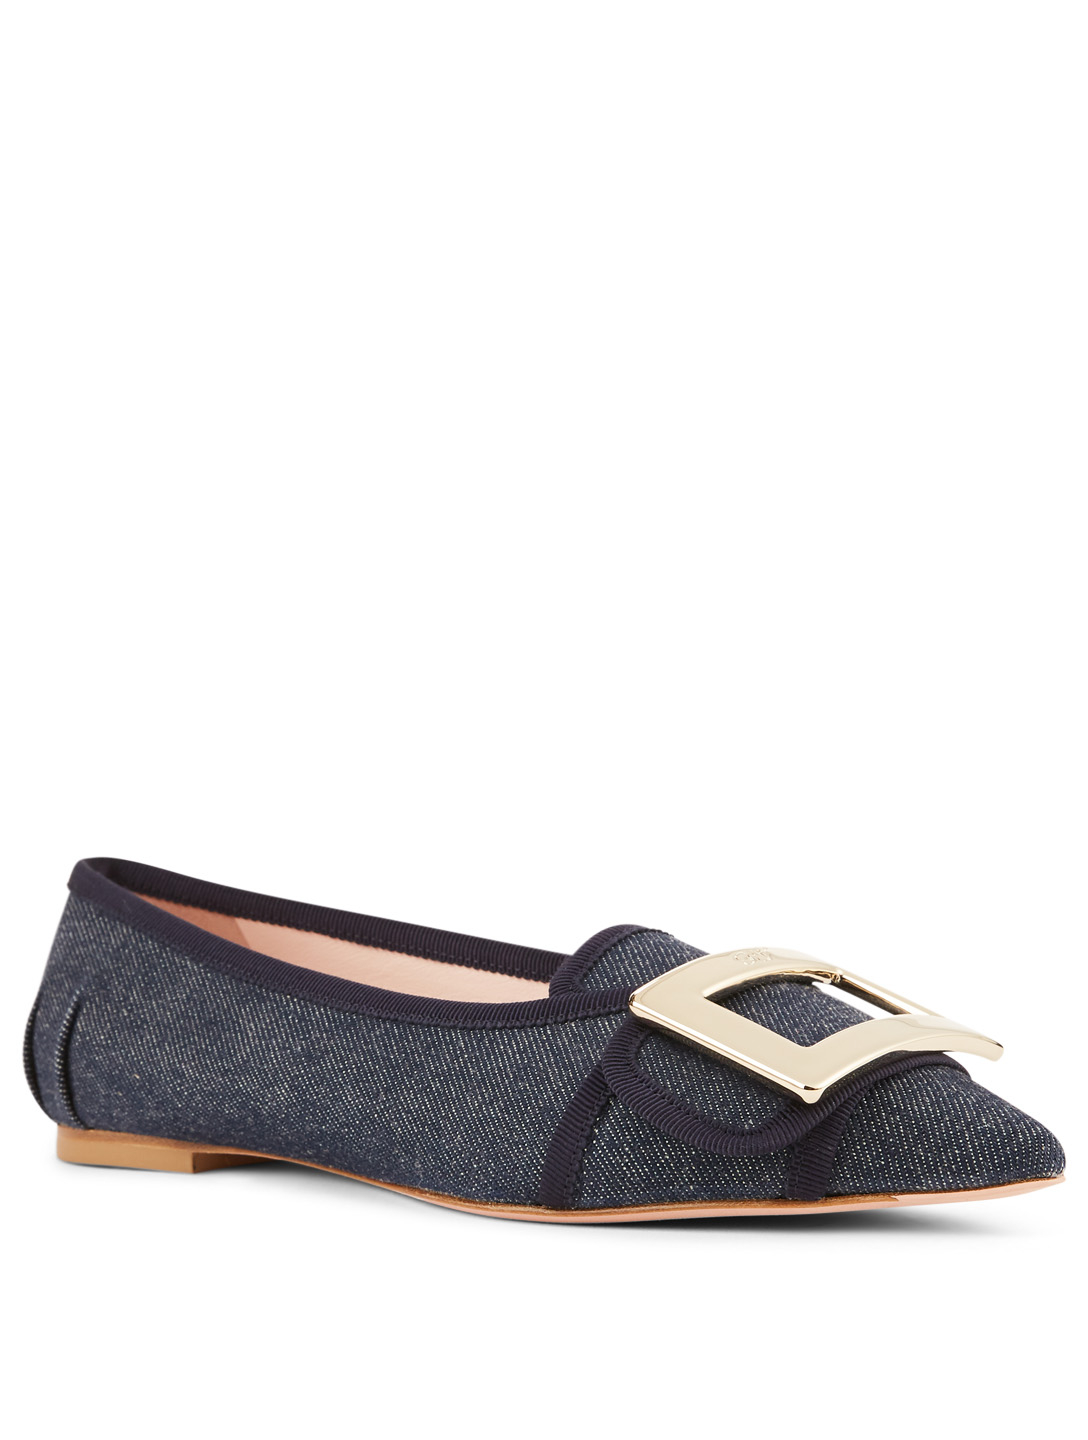 ROGER VIVIER Gommettine Denim Ballet Flats Womens Blue